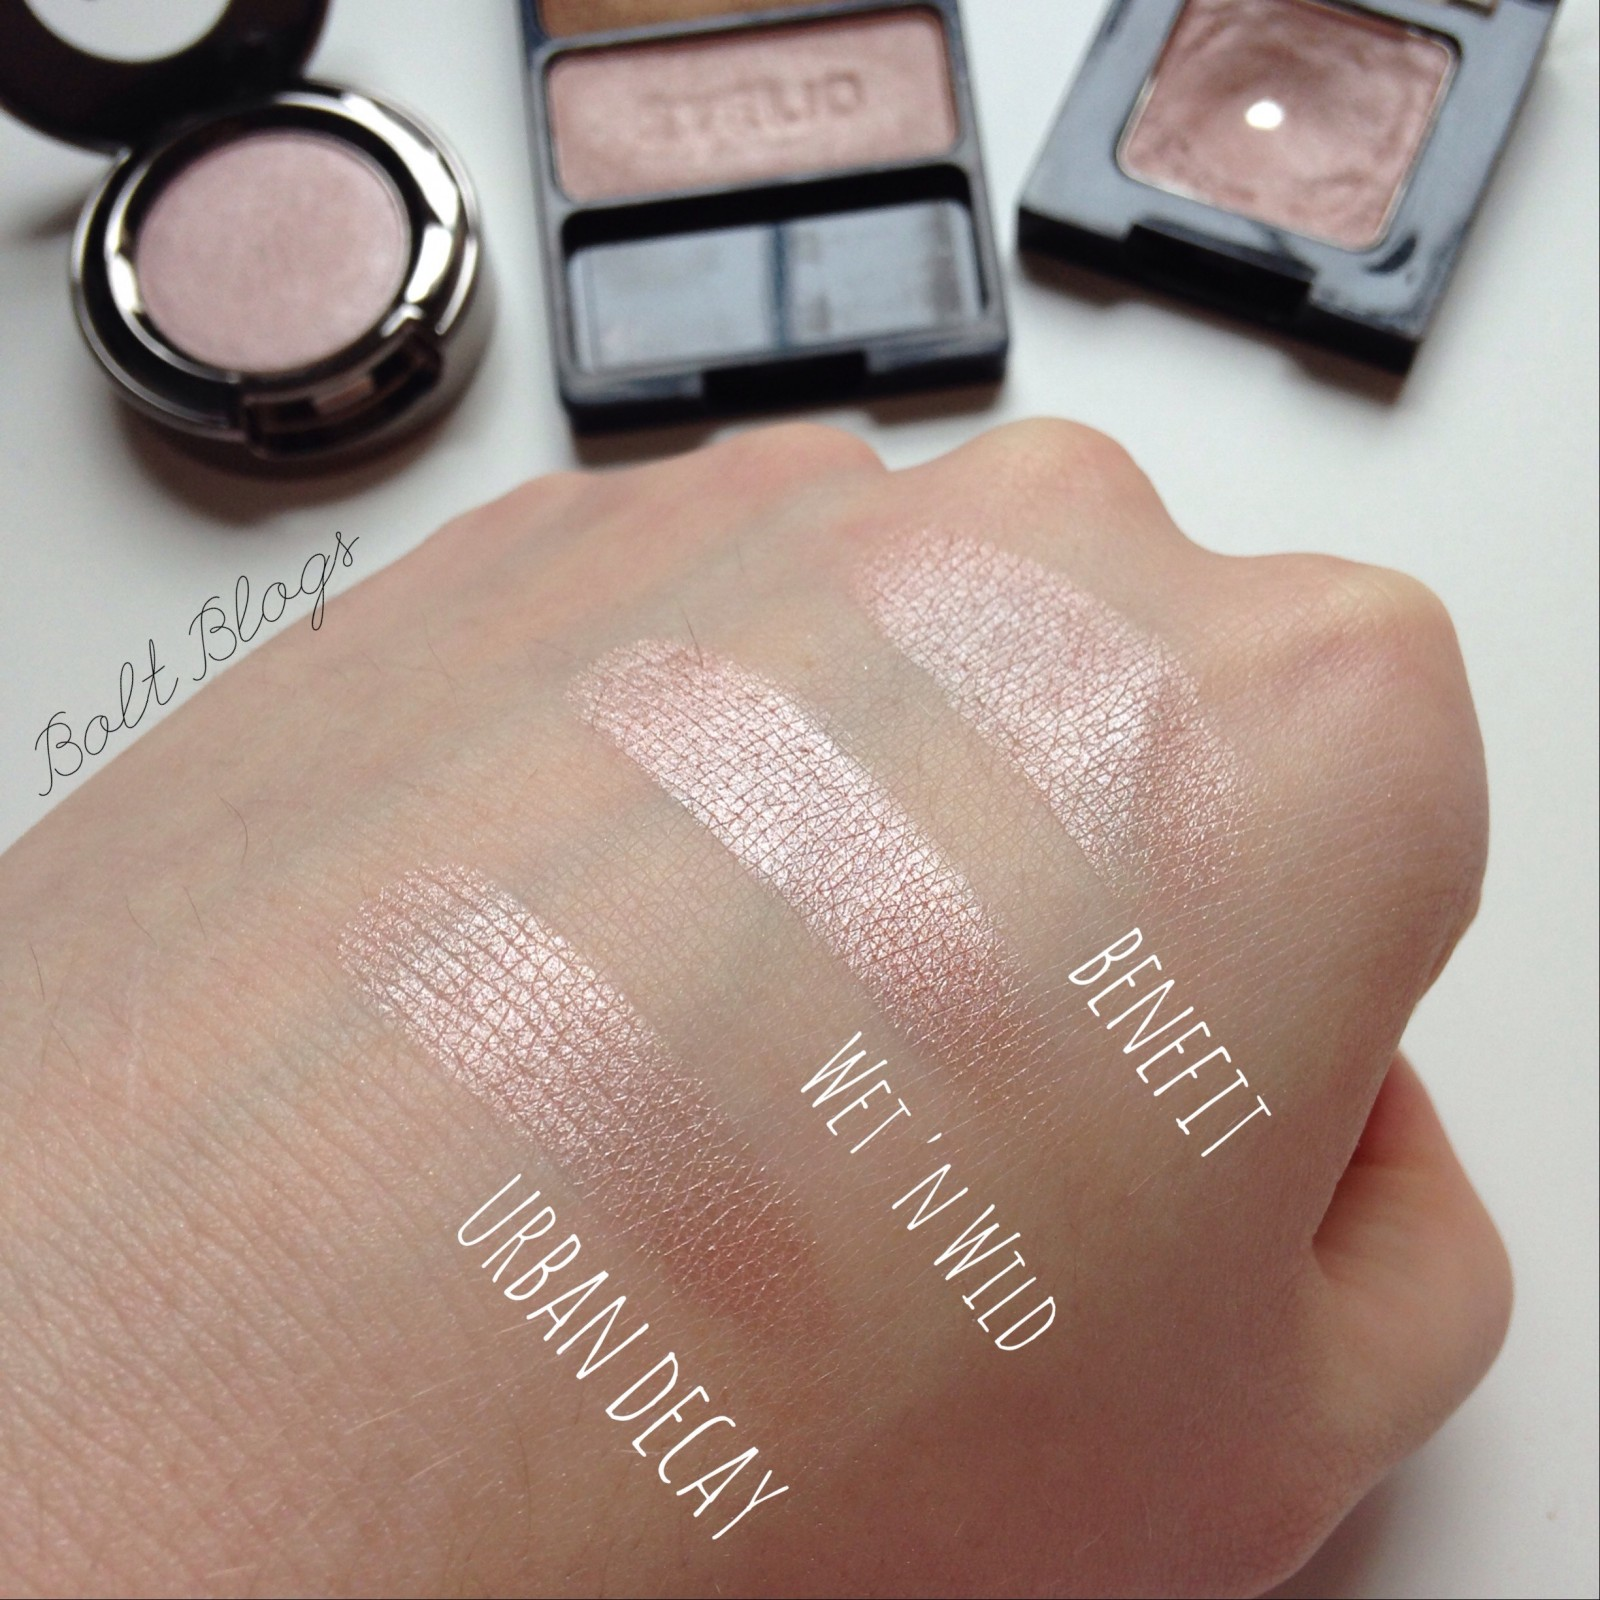 High End Shadows: Drugstore Dupe!